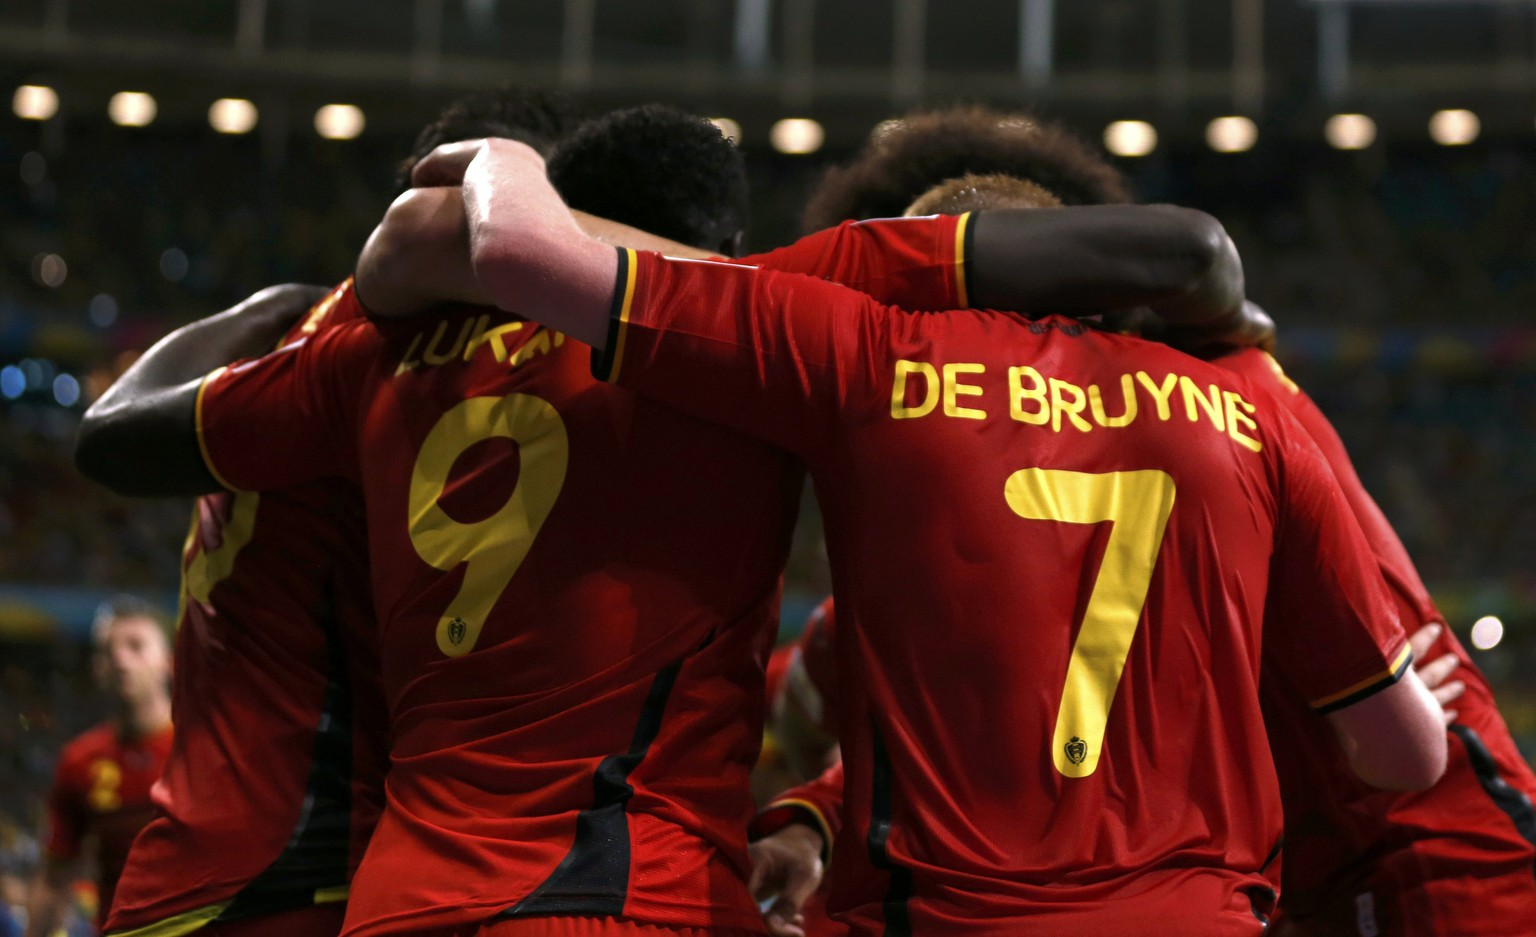 Belgium's Romelu Lukaku celebrates with Kevin De Bruyne (R) after scoring a goal during extra time in the 2014 World Cup round of 16 game between Belgium and the U.S. at the Fonte Nova arena in Salvador July 1, 2014.  REUTERS/Marcos Brindicci (BRAZIL  - Tags: TPX IMAGES OF THE DAY SOCCER SPORT WORLD CUP)